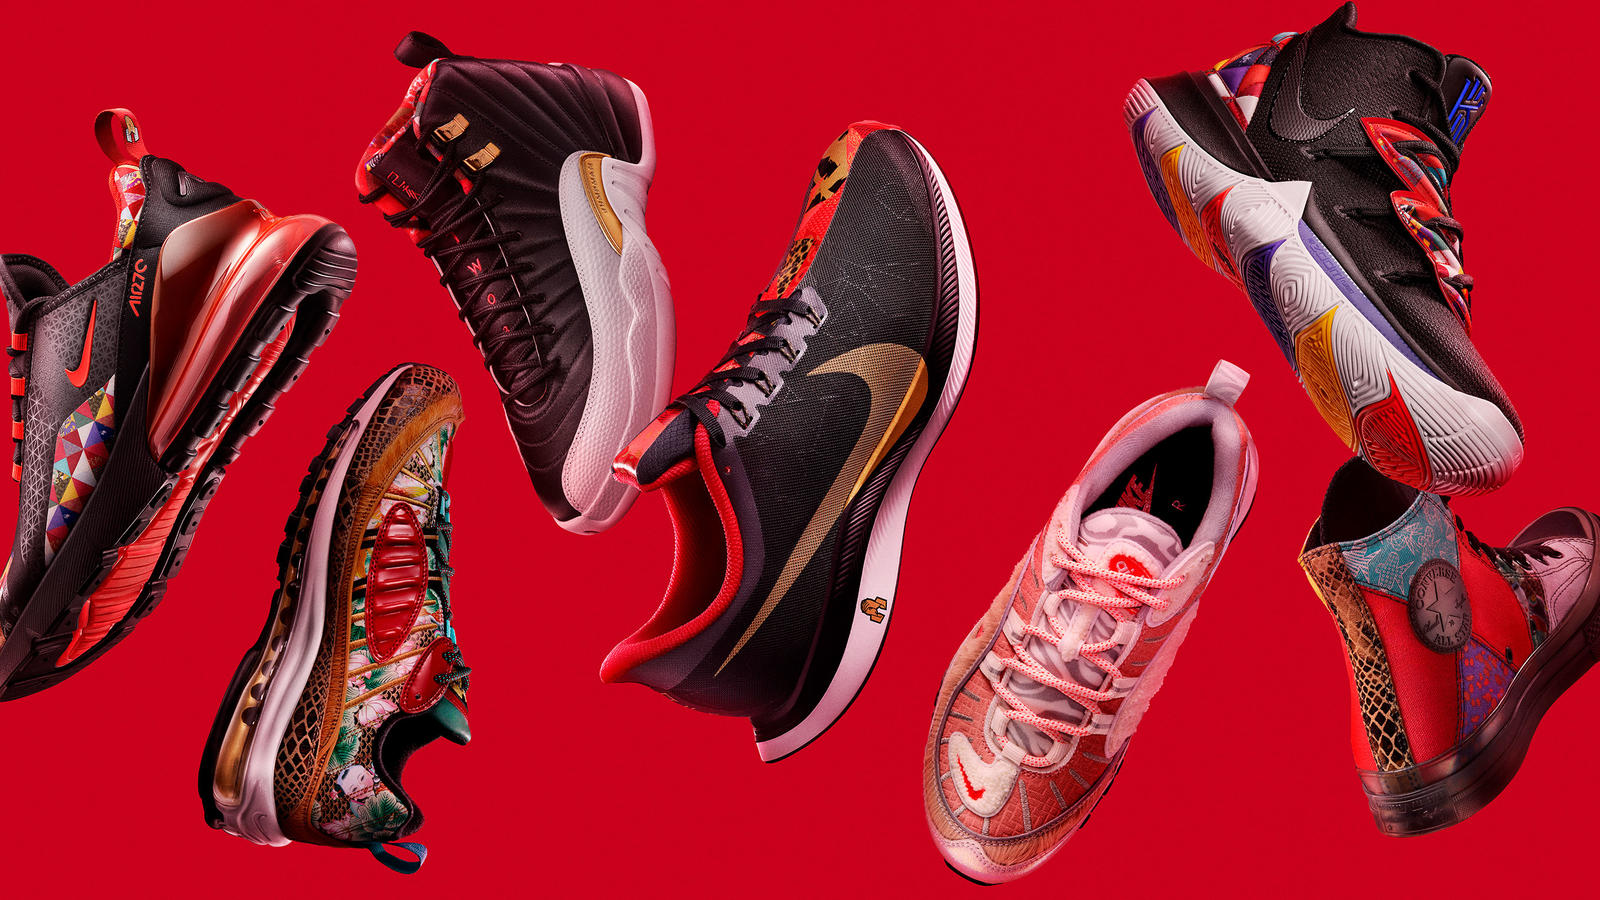 brand new 4cf94 6baa8 The Year of the Pig Chinese New Year Collection Brings Together 12 Years of  Nike CNY